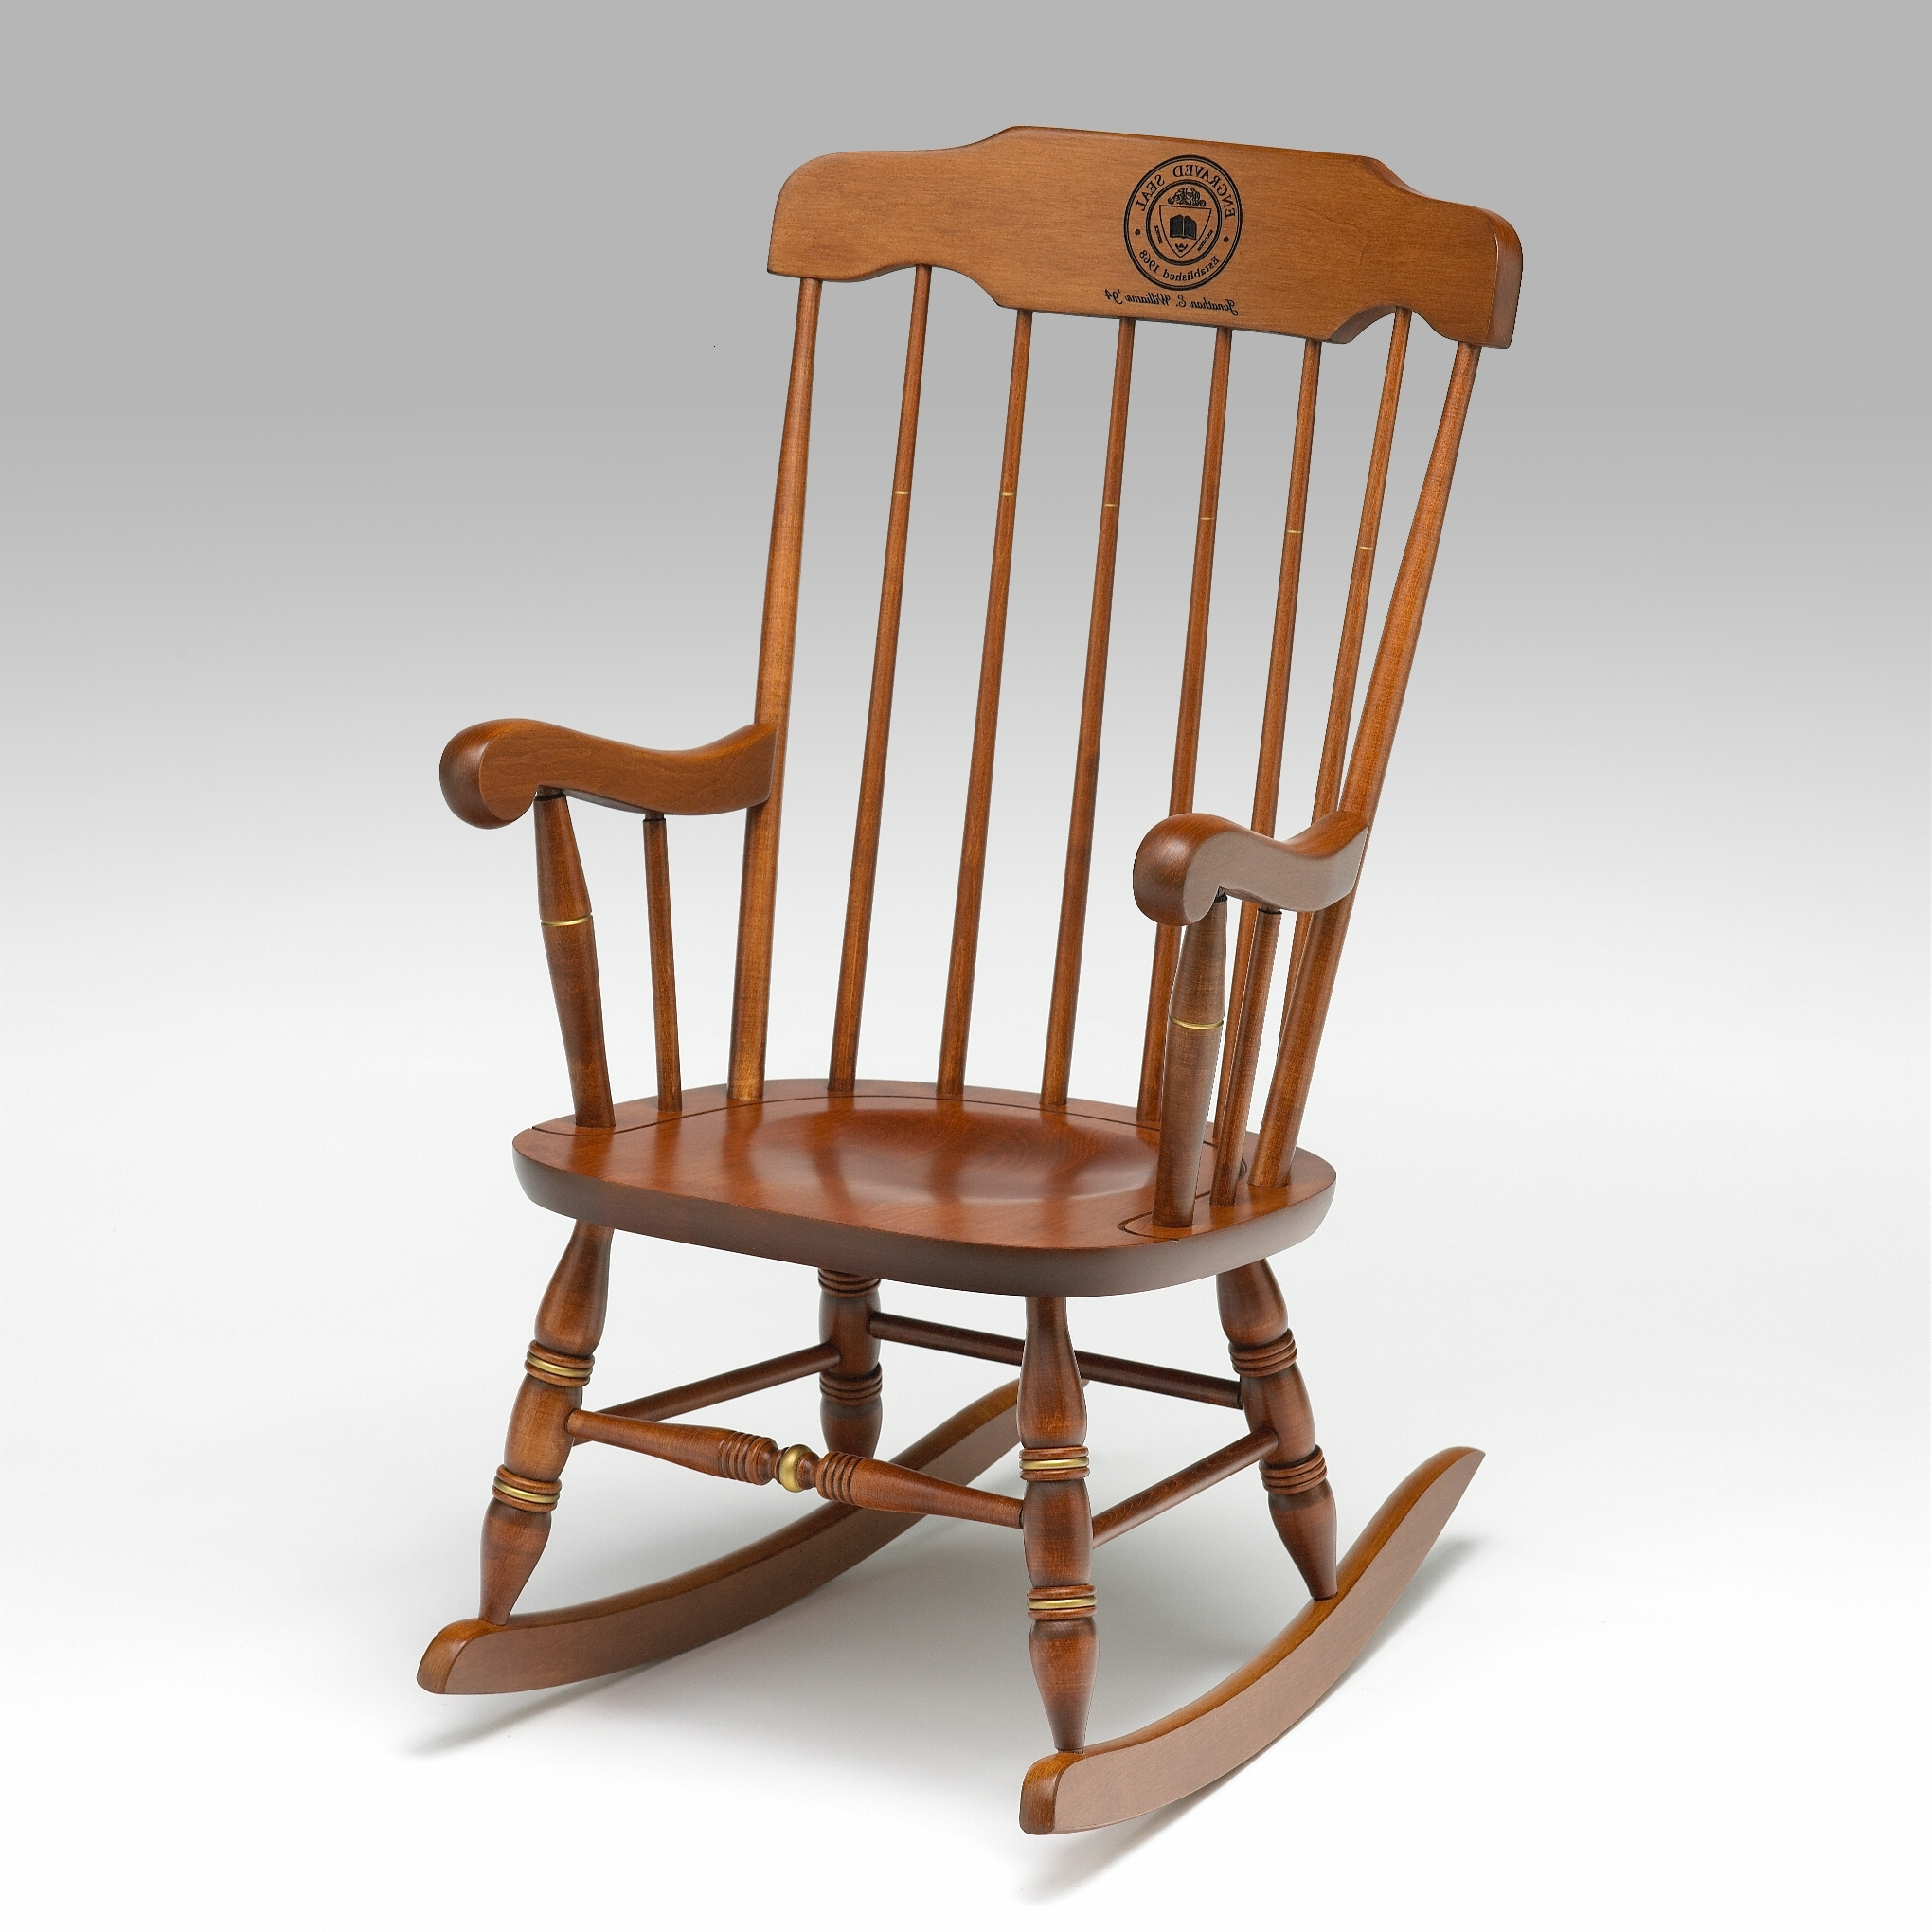 Favorite Rocking Chairs Throughout Help Me Safely Disassemble A Rocking Chair – Furniture Dit (View 8 of 20)